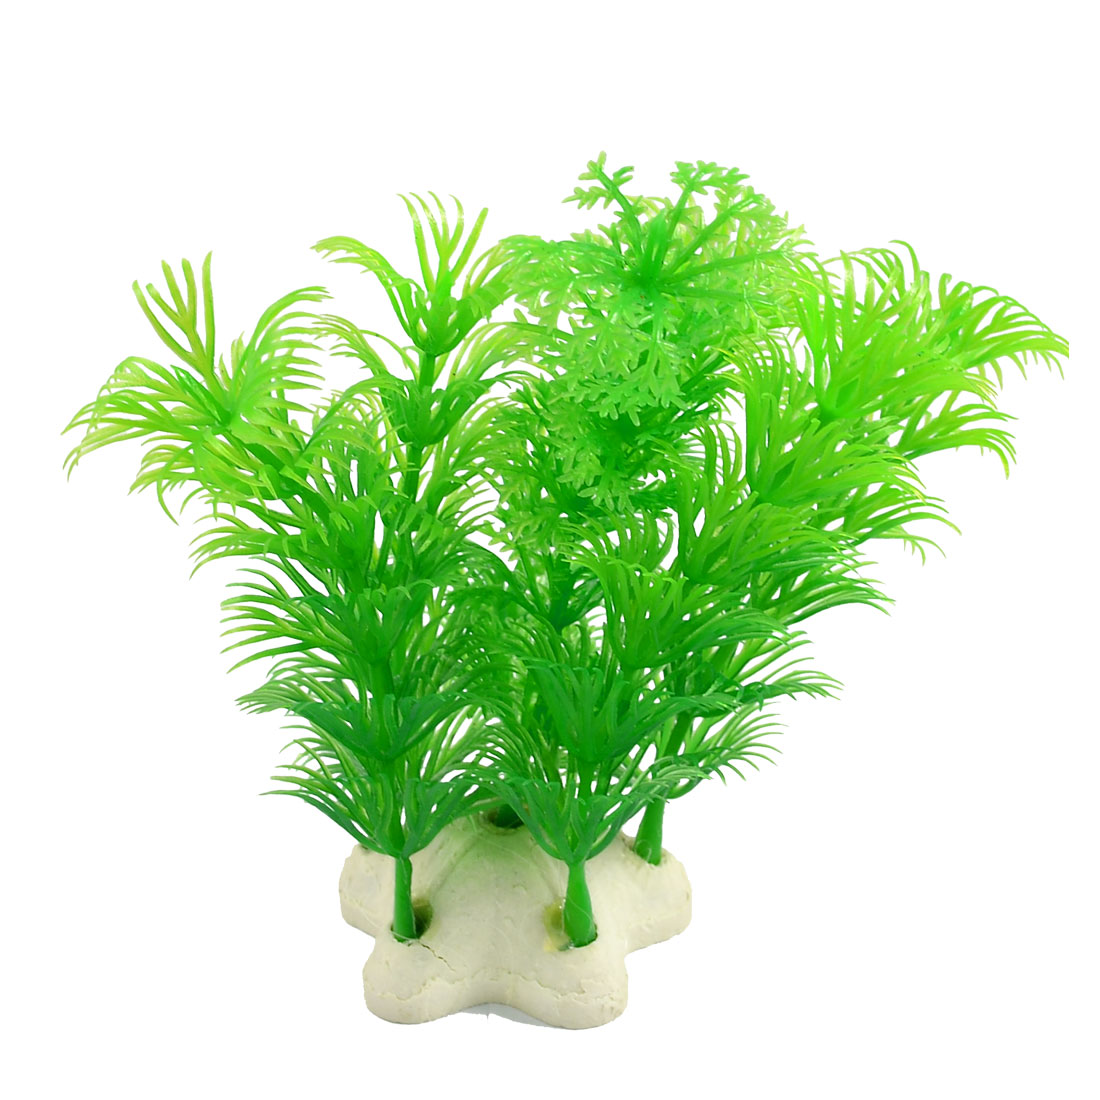 Aquarium Snowflake Leaf Plastic Plant Decoration Green w Star Base